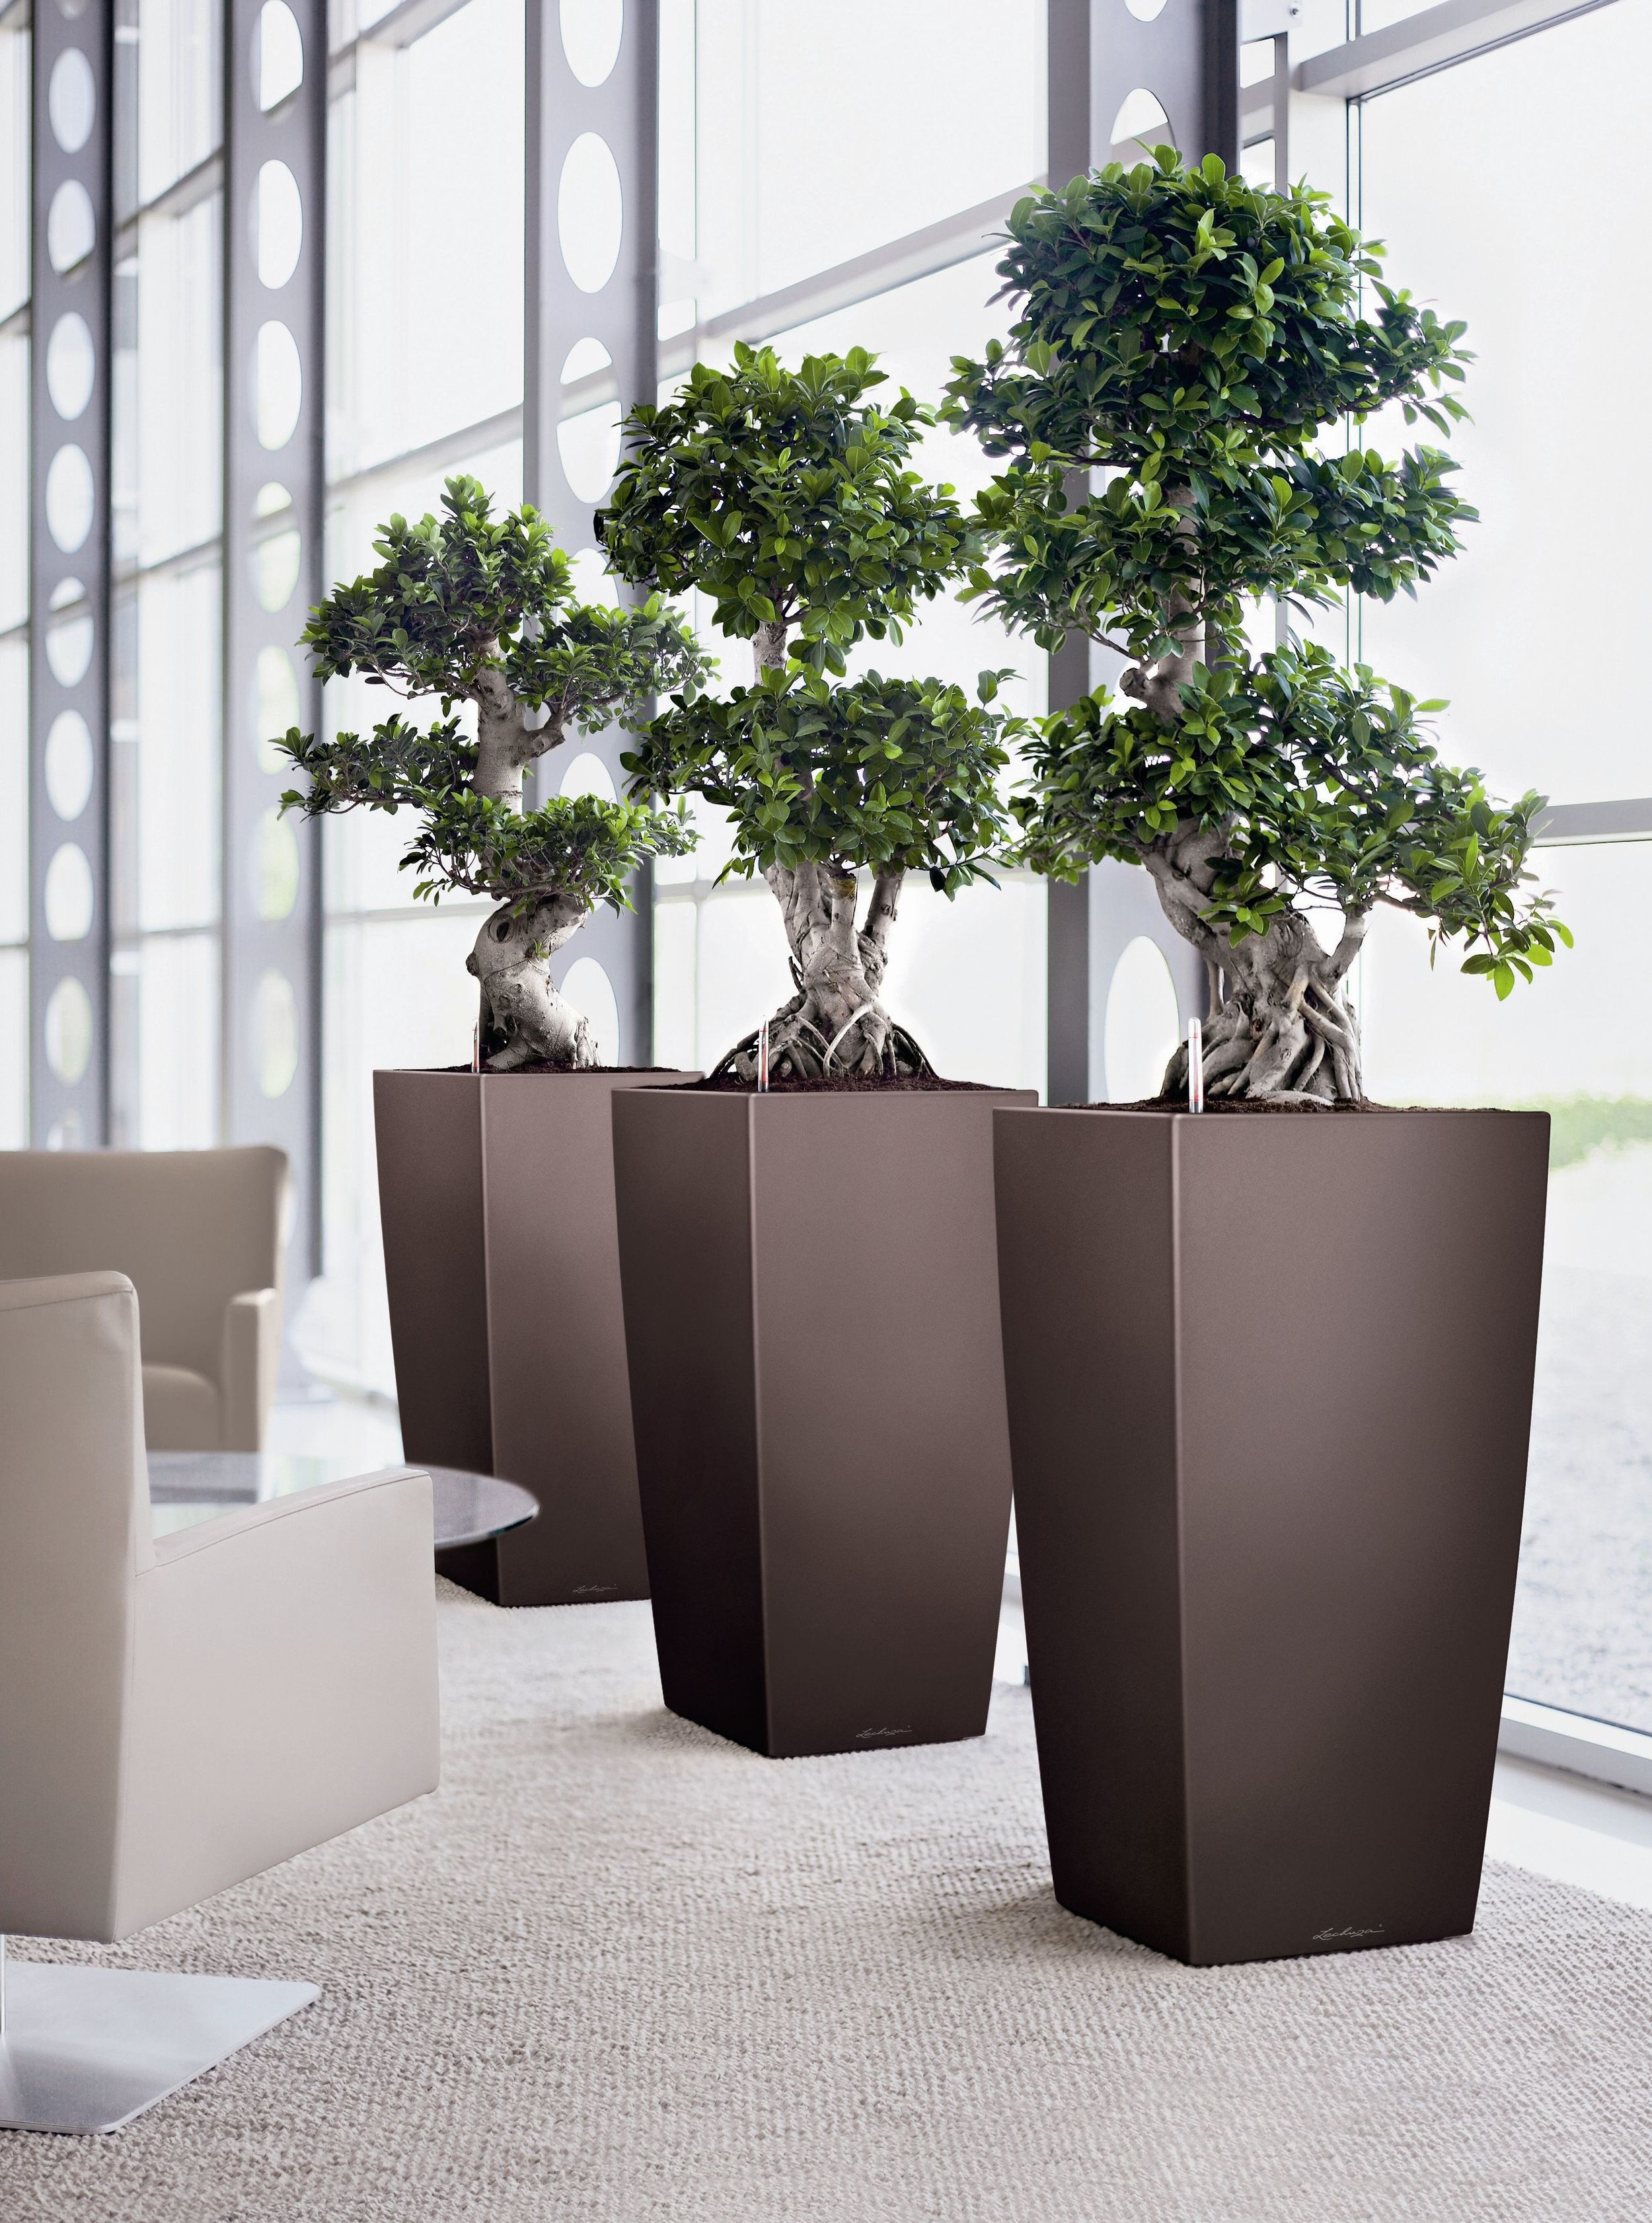 Cubico 50 Espresso 3 planters Ficus microcarpa - higher resolution .jpg